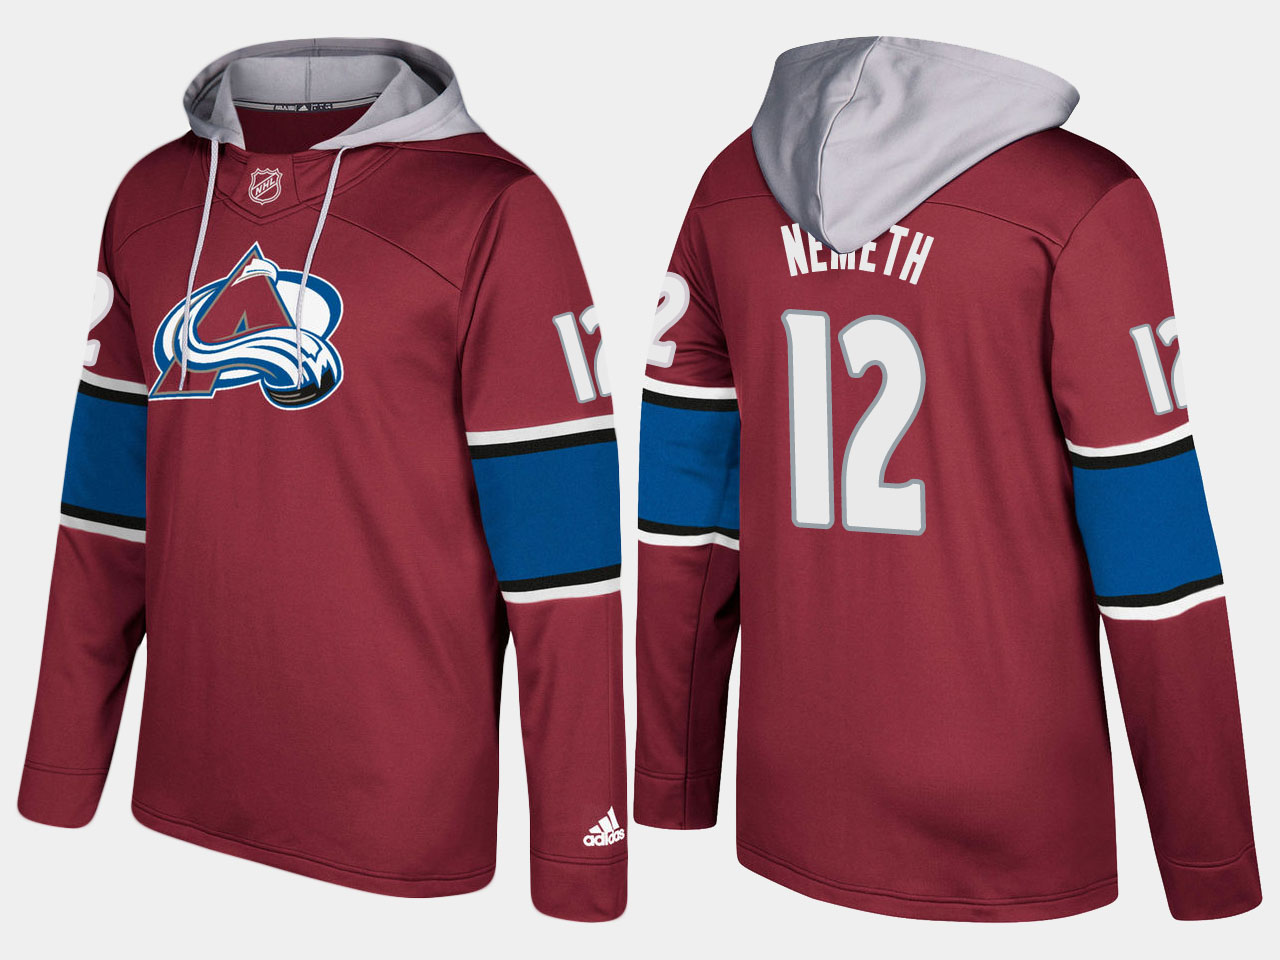 Men NHL Colorado avalanche 12 patrik nemeth burgundy hoodie